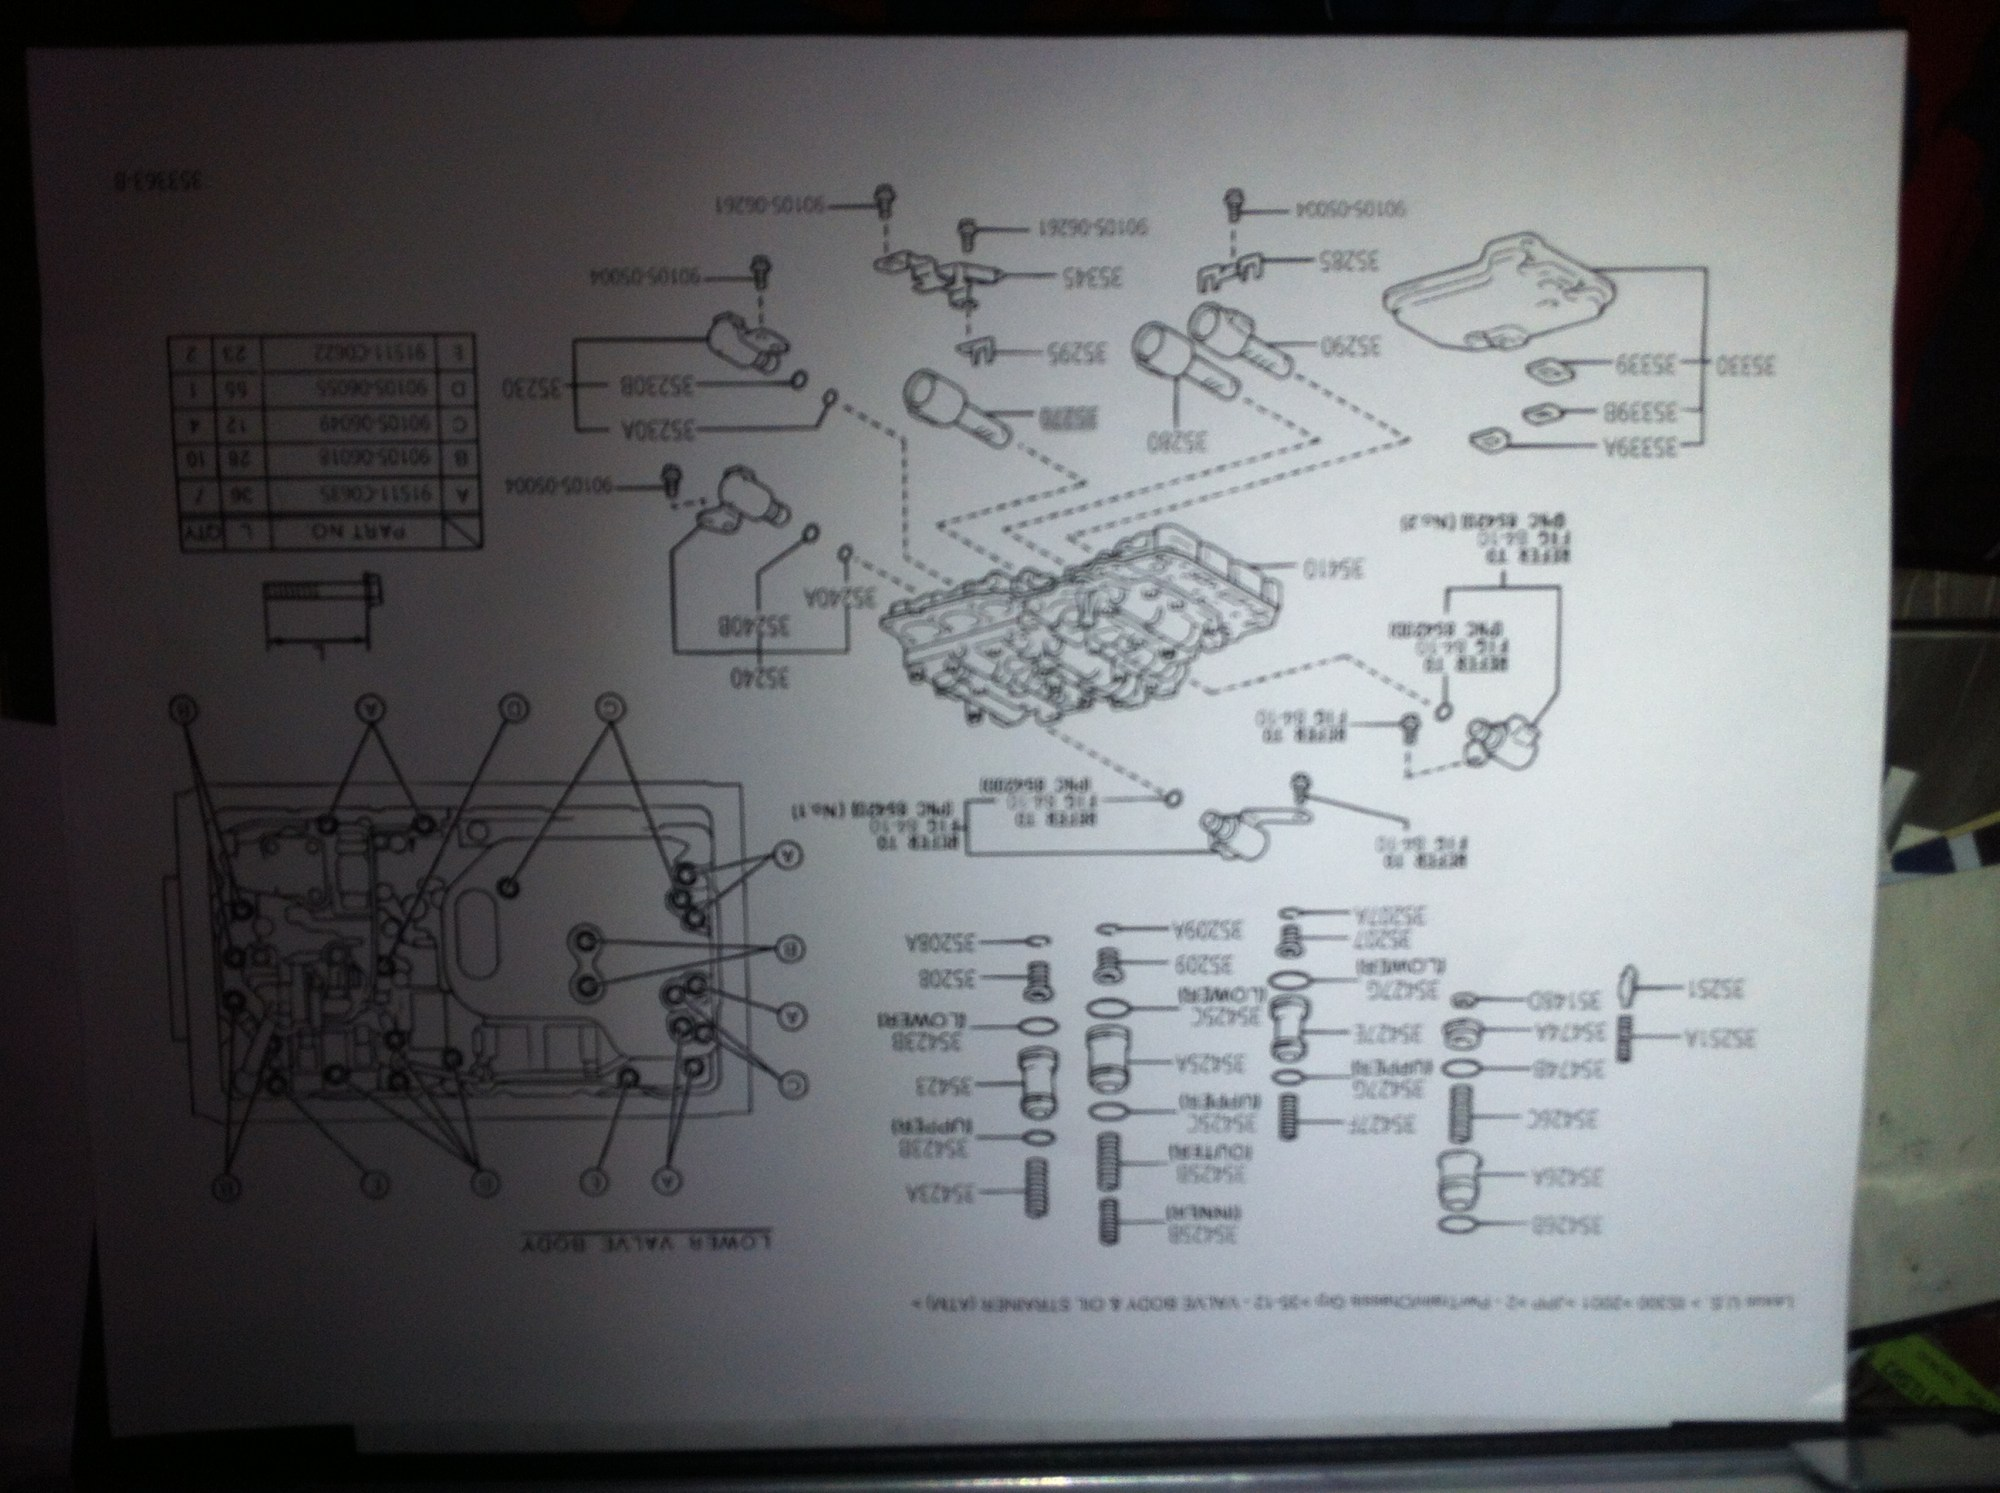 hight resolution of wiring diagram 753 2001 wiring librarywiring diagram 753 2001 16